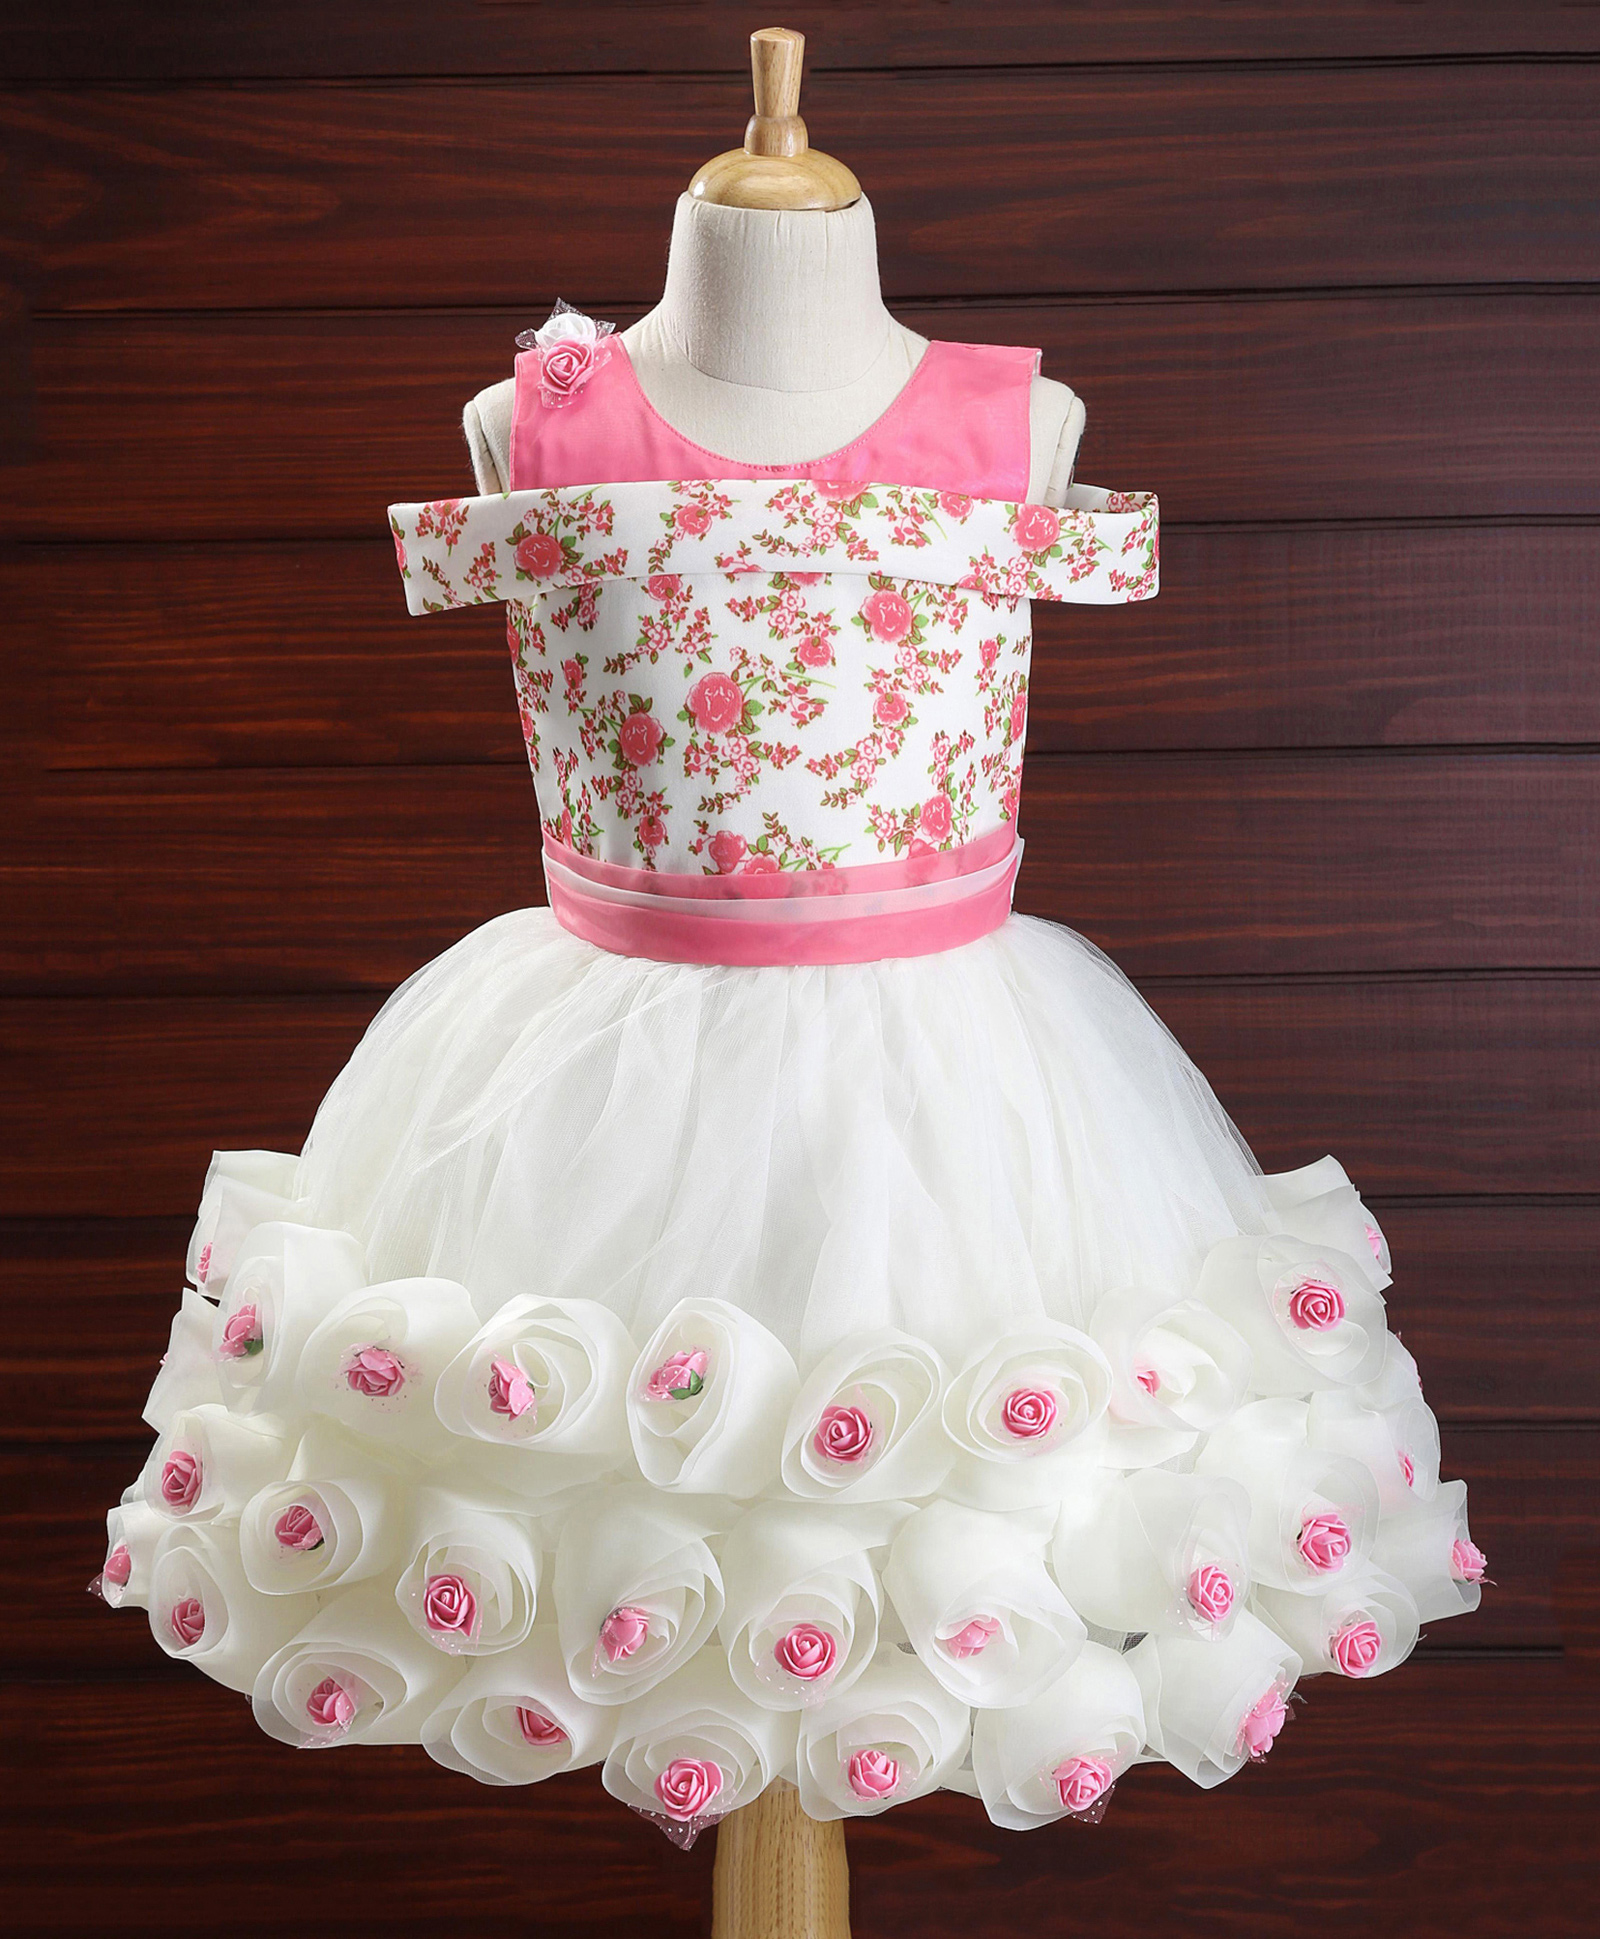 a2bfbe93d79 Baby Girl Birthday Dress Online Shopping India - raveitsafe